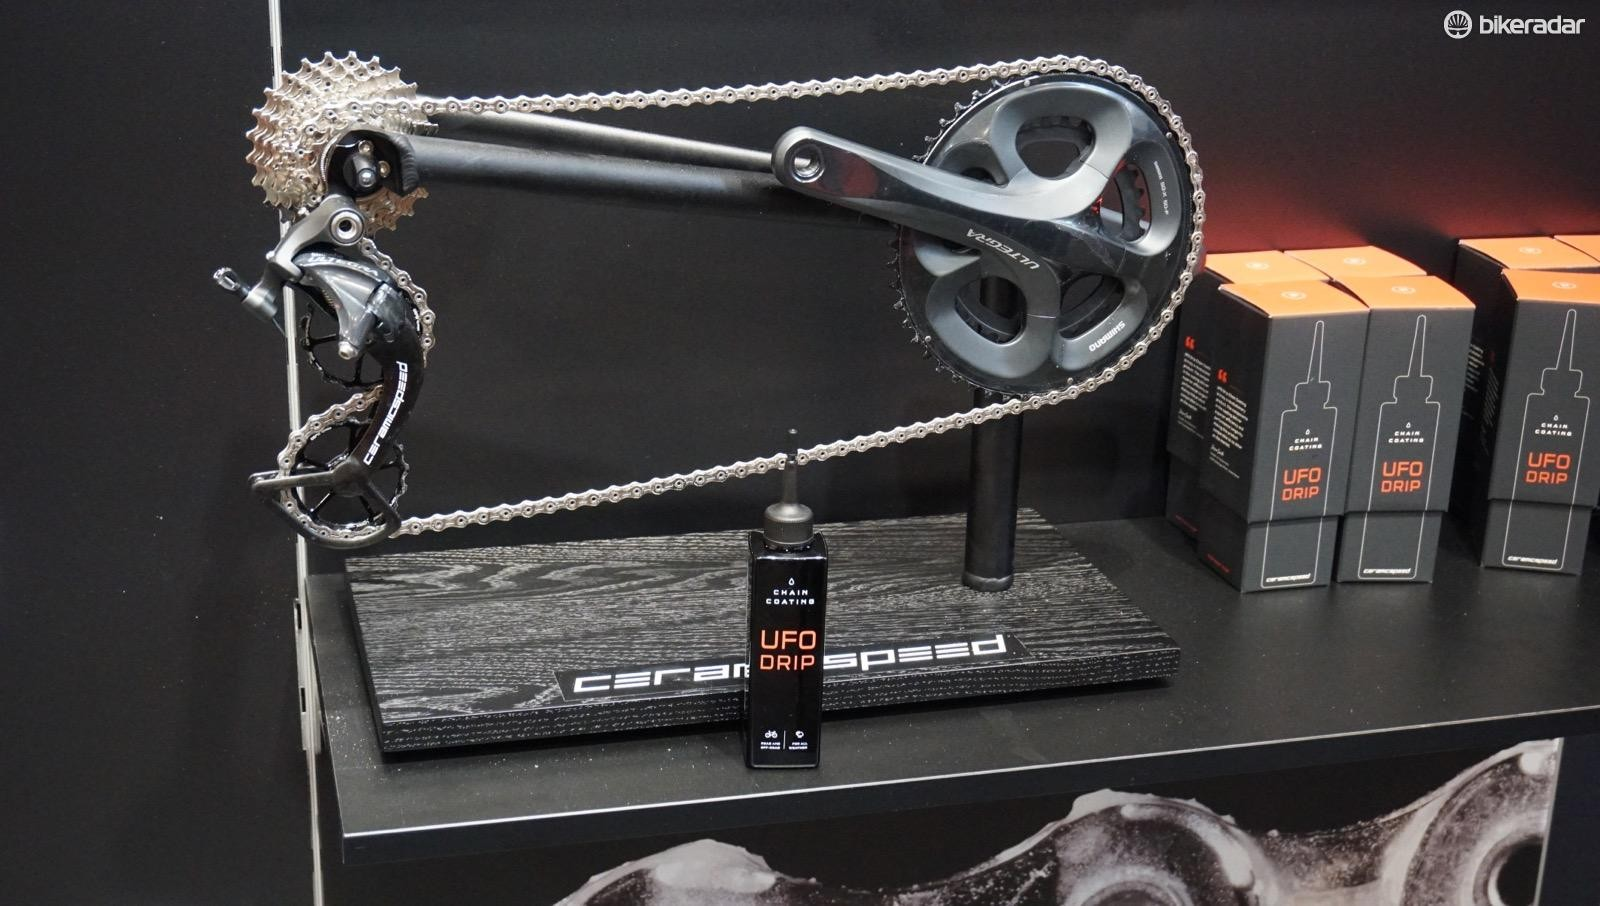 CeramicSpeed's business model is seeking out smoother-running solutions, like ceramic bearing and oversize pulleys